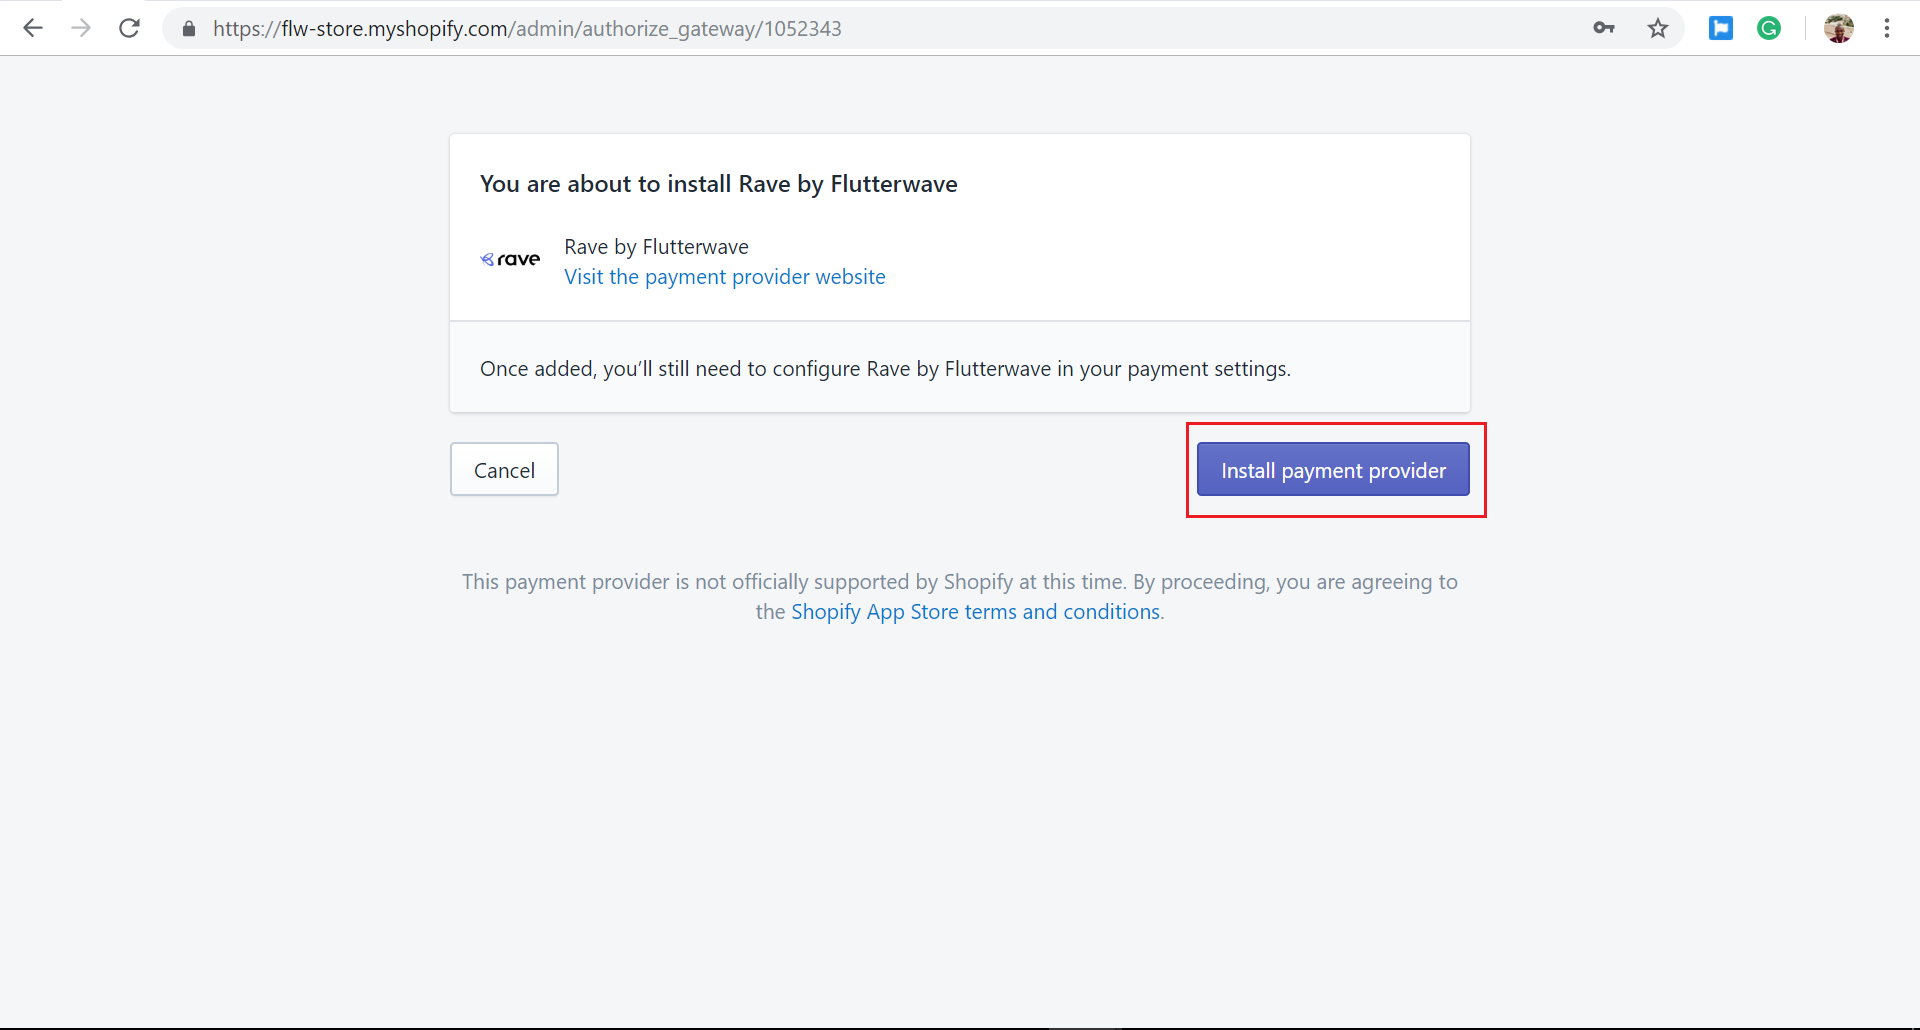 How To Integrate Rave into Shopify - Flutterwave Help & Support